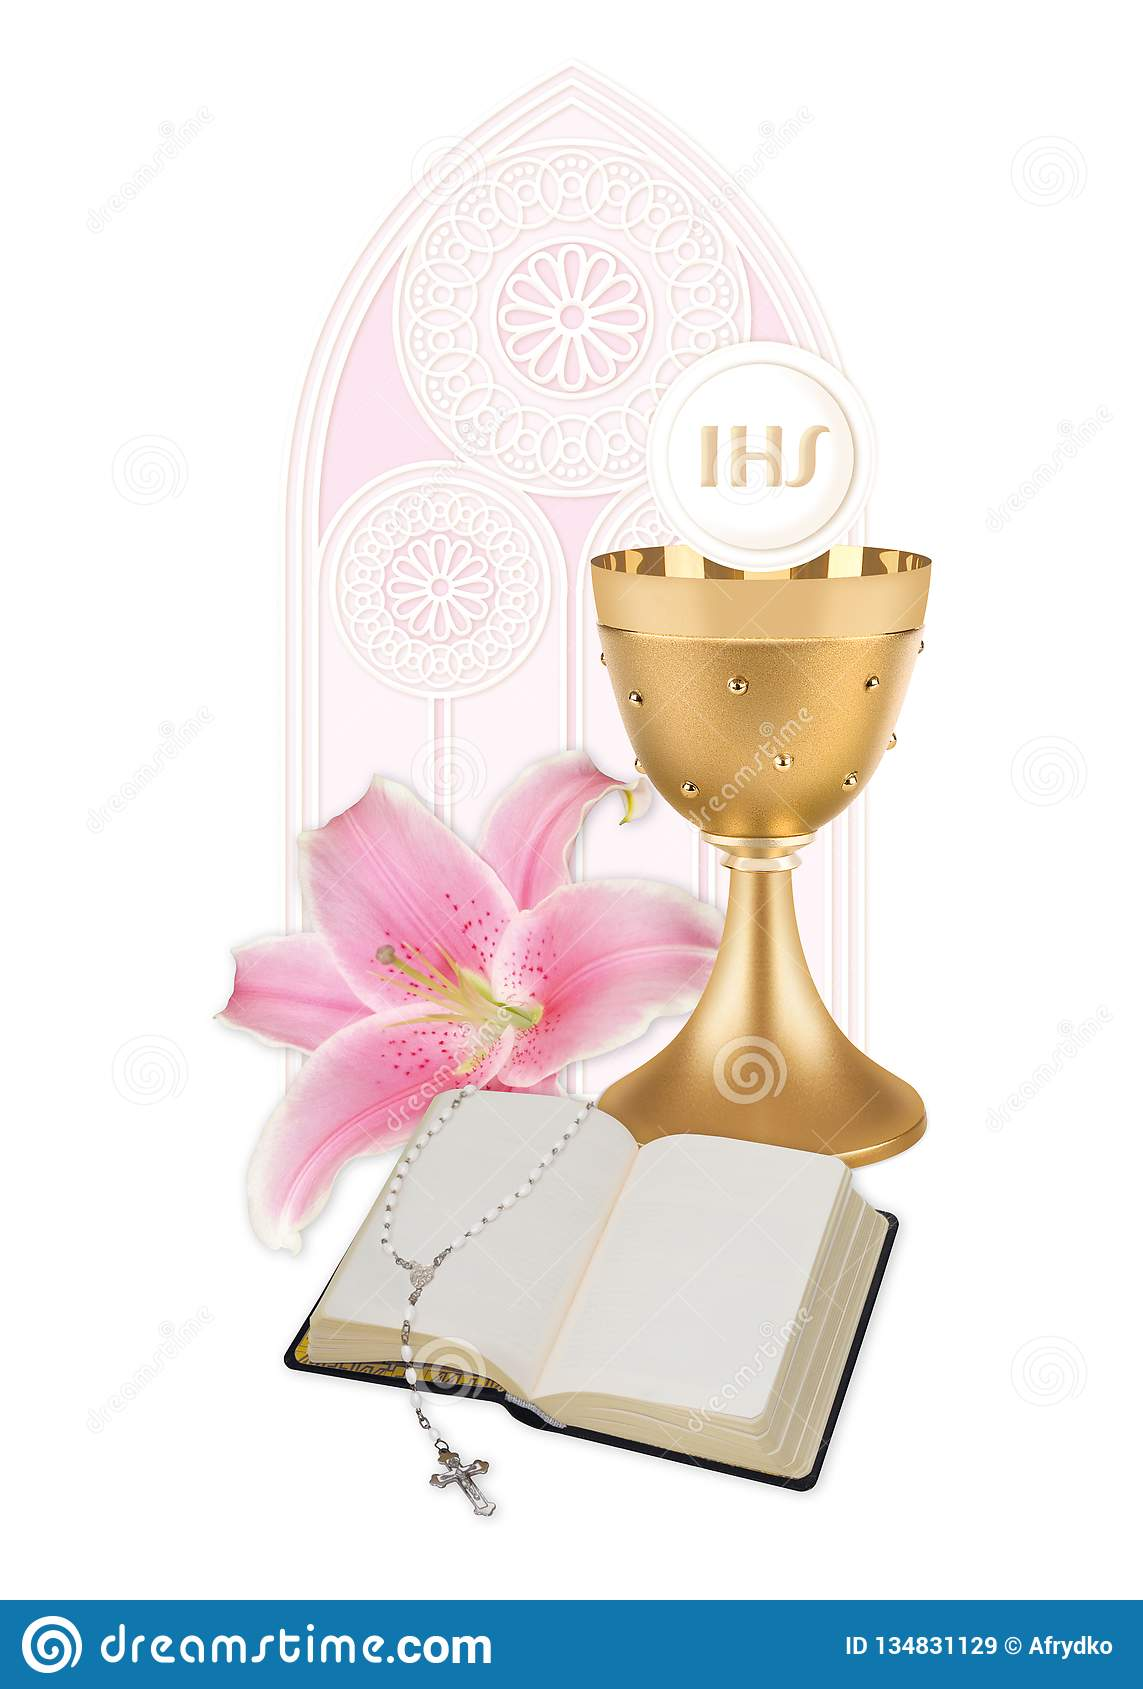 b894442eb The first Holy Communion stock image. Image of communion - 134831129